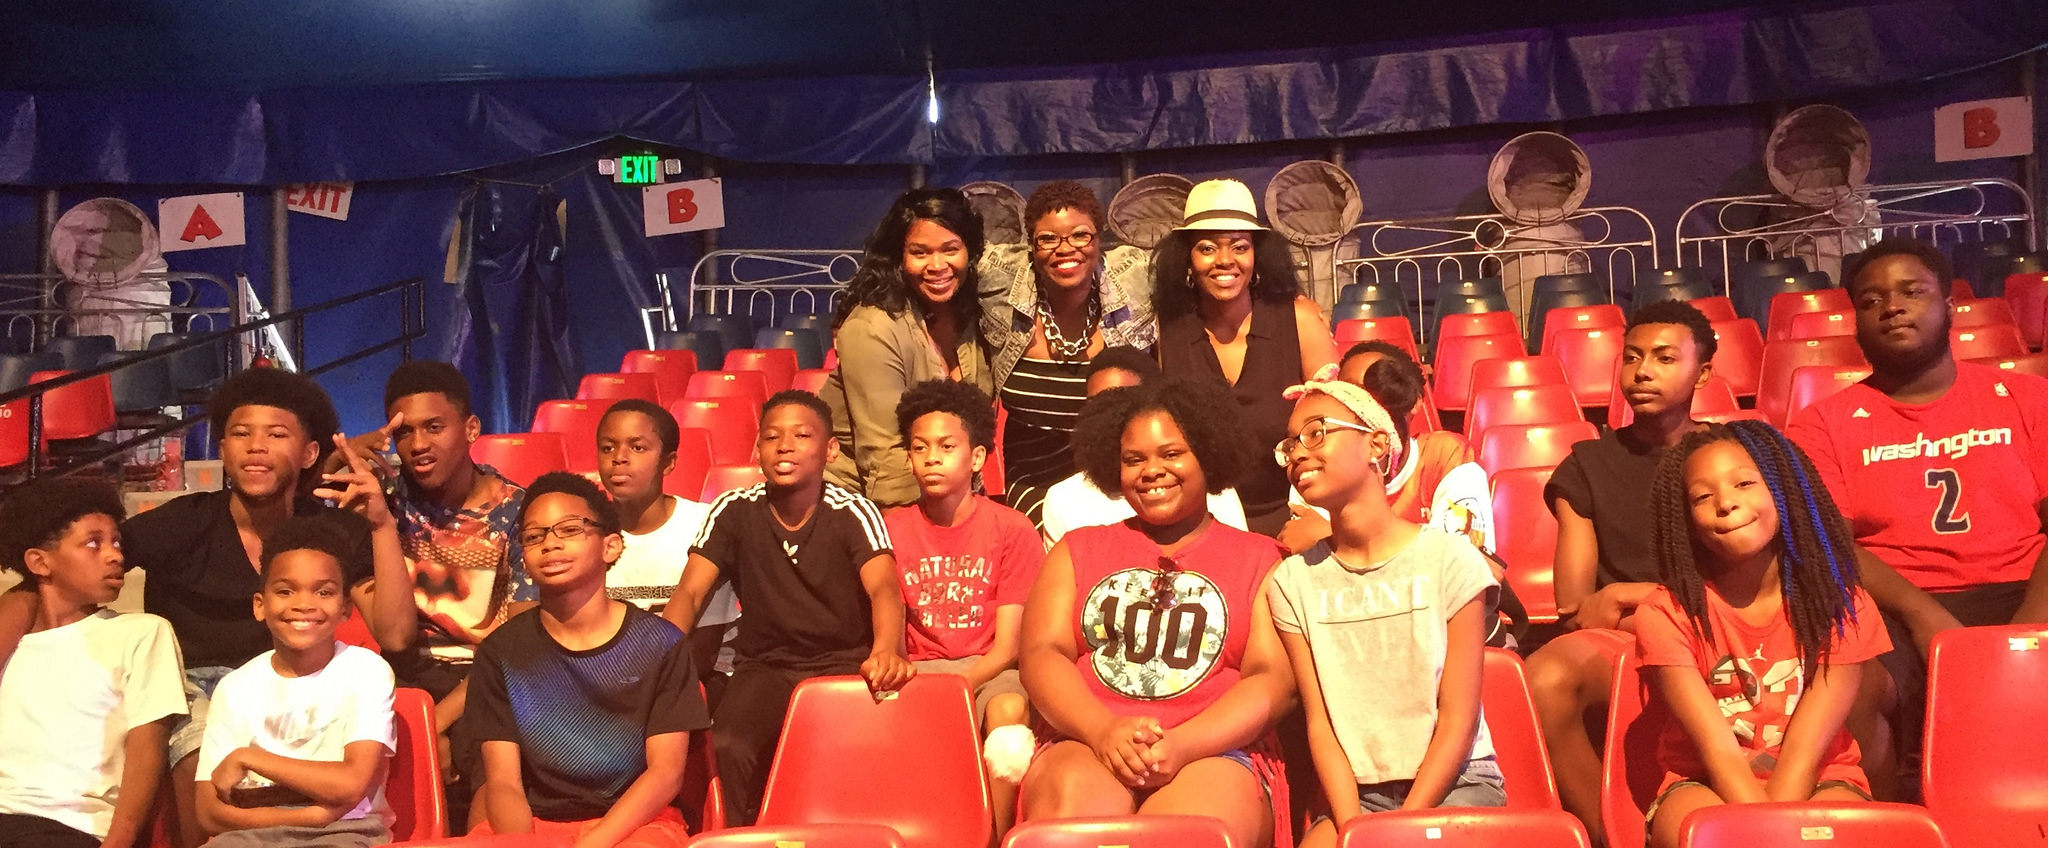 TFE Attends UniverSoul Circus